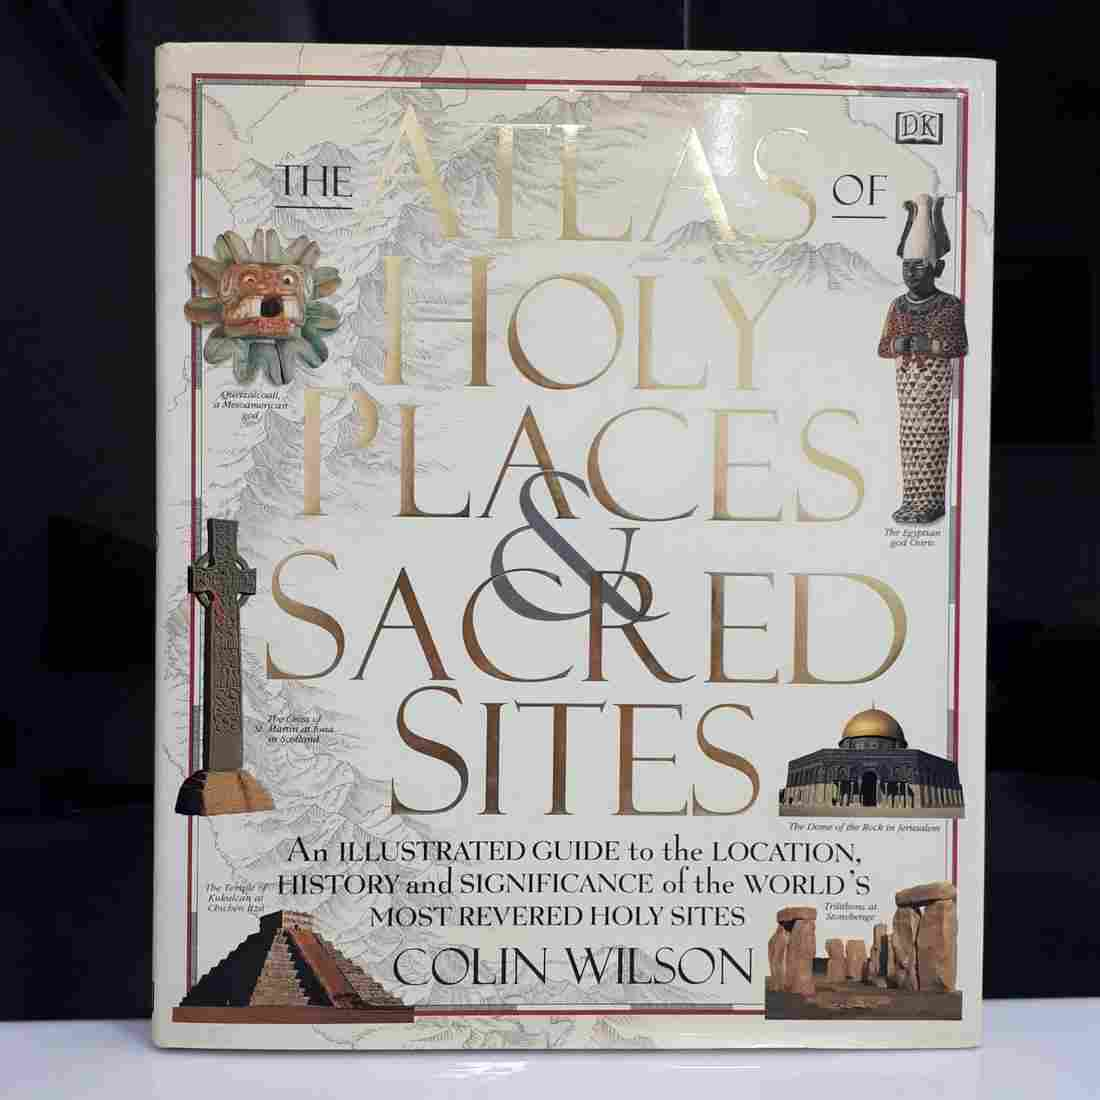 THE ATLAS OF HOLY PLACES & SACRED SITES